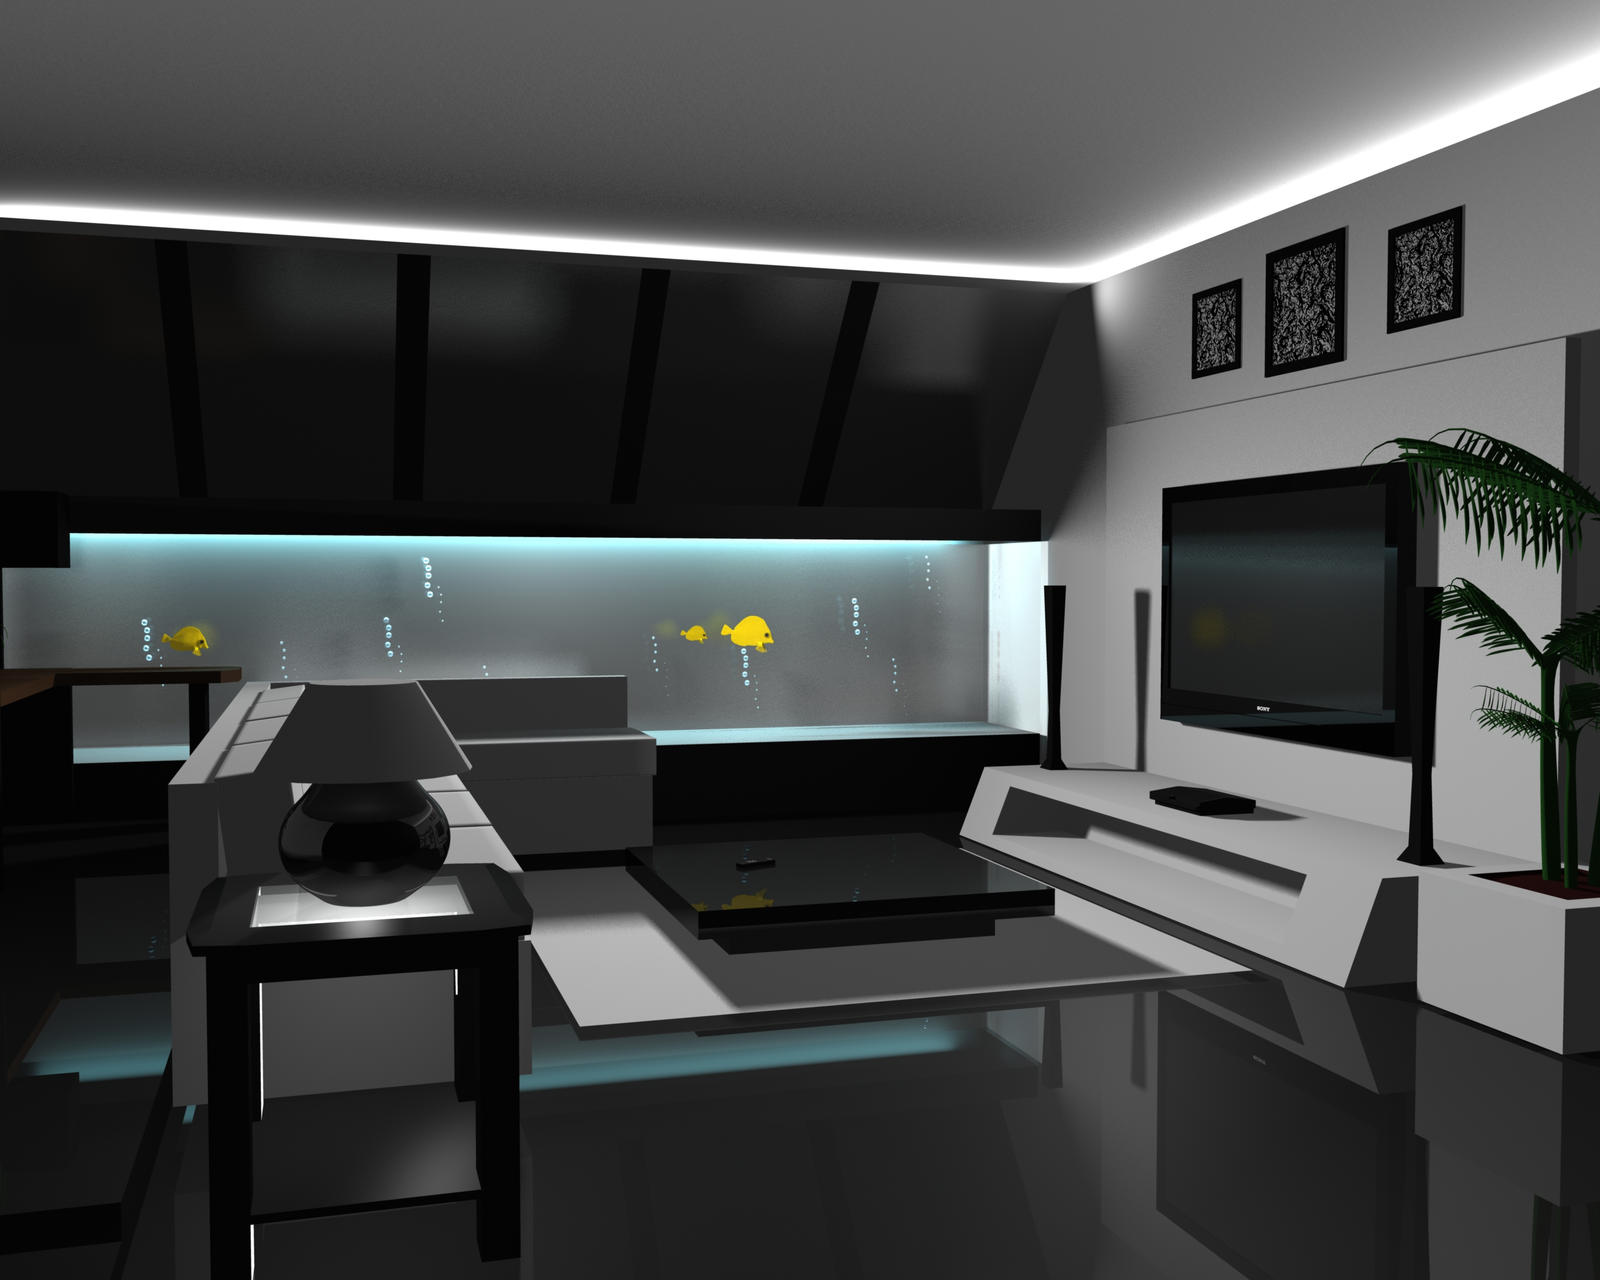 Modern media room by xbrainshock on deviantart for What is a media room